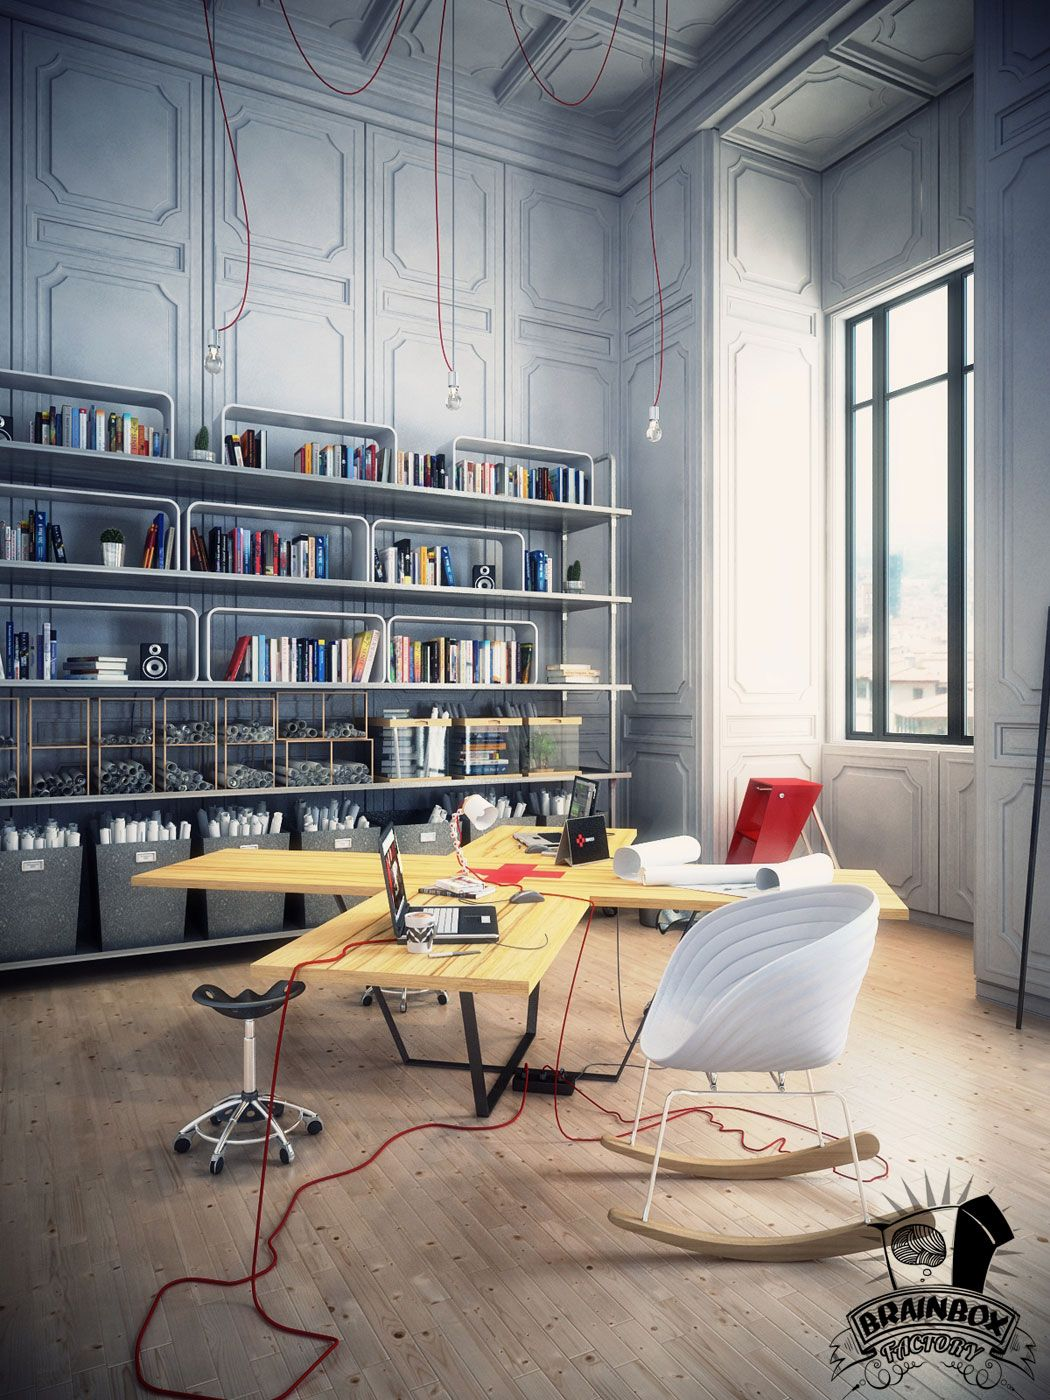 Modern creative office spaces google search dise o - Diseno de interiores trabajo ...